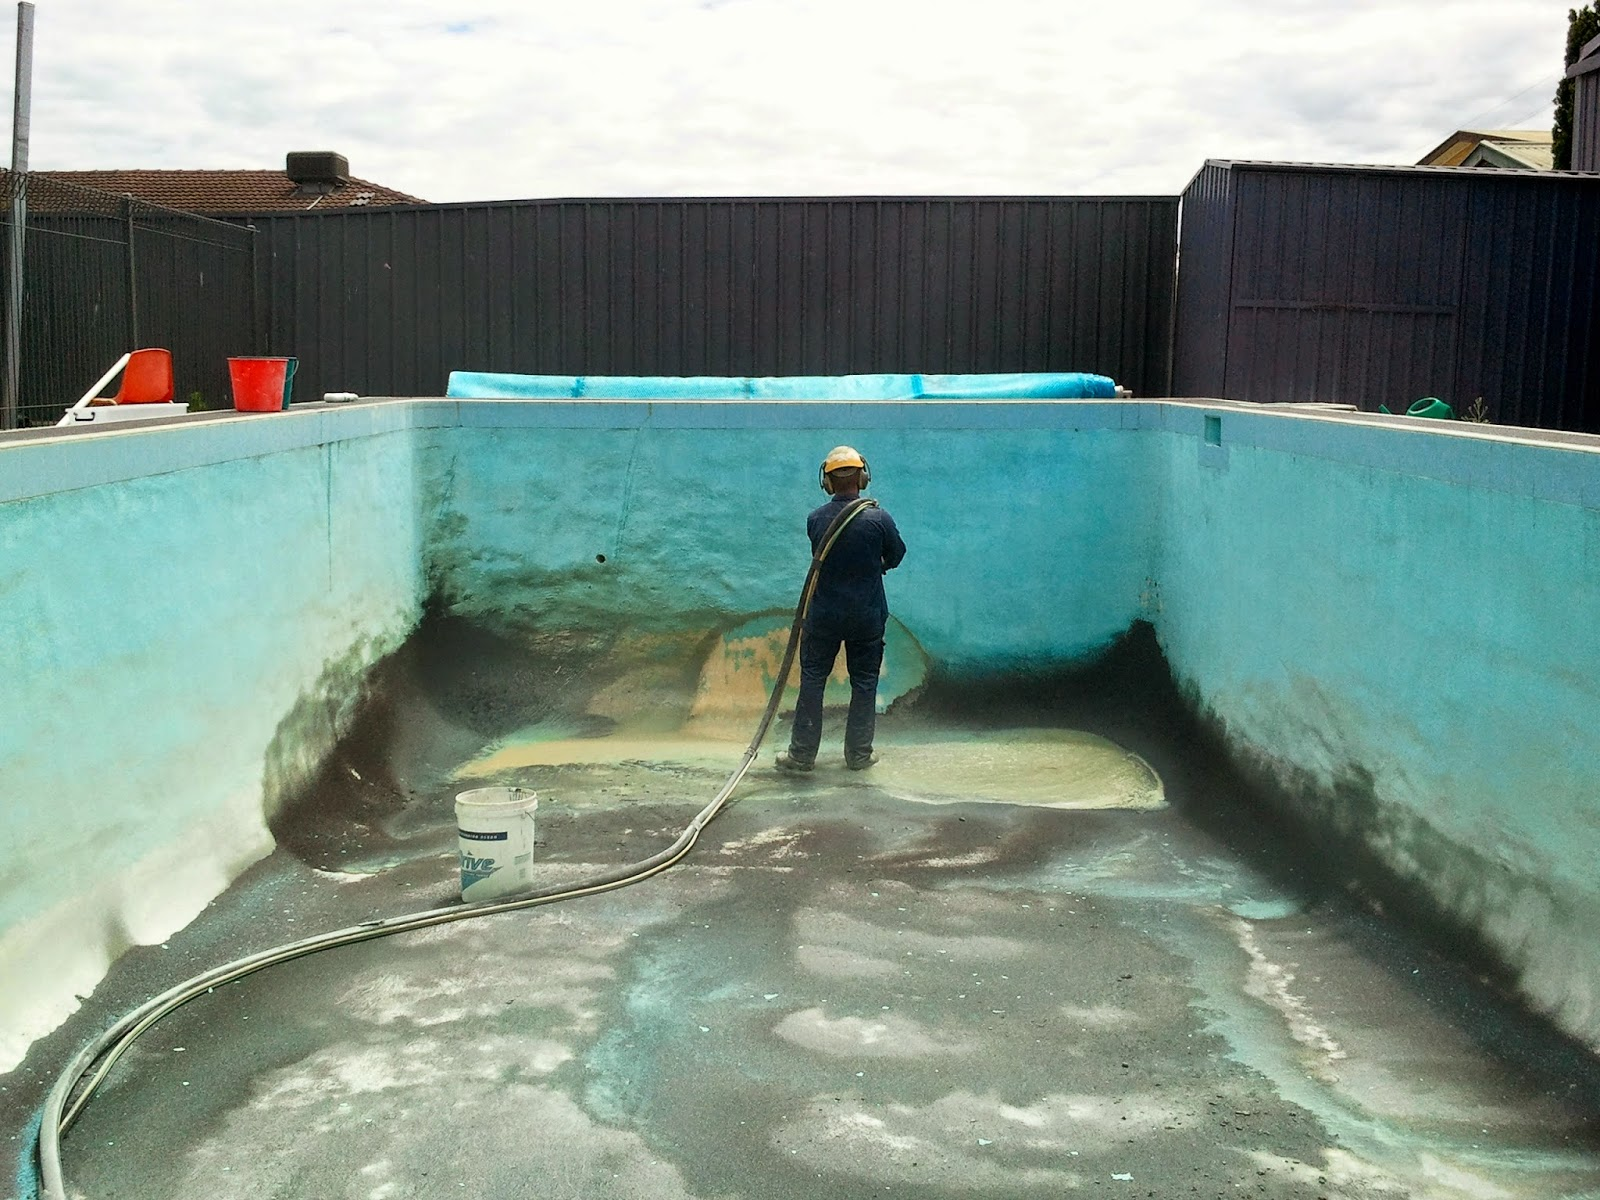 Abrasive blasting is especially effective in removing stains and fungal growth from swimming pools